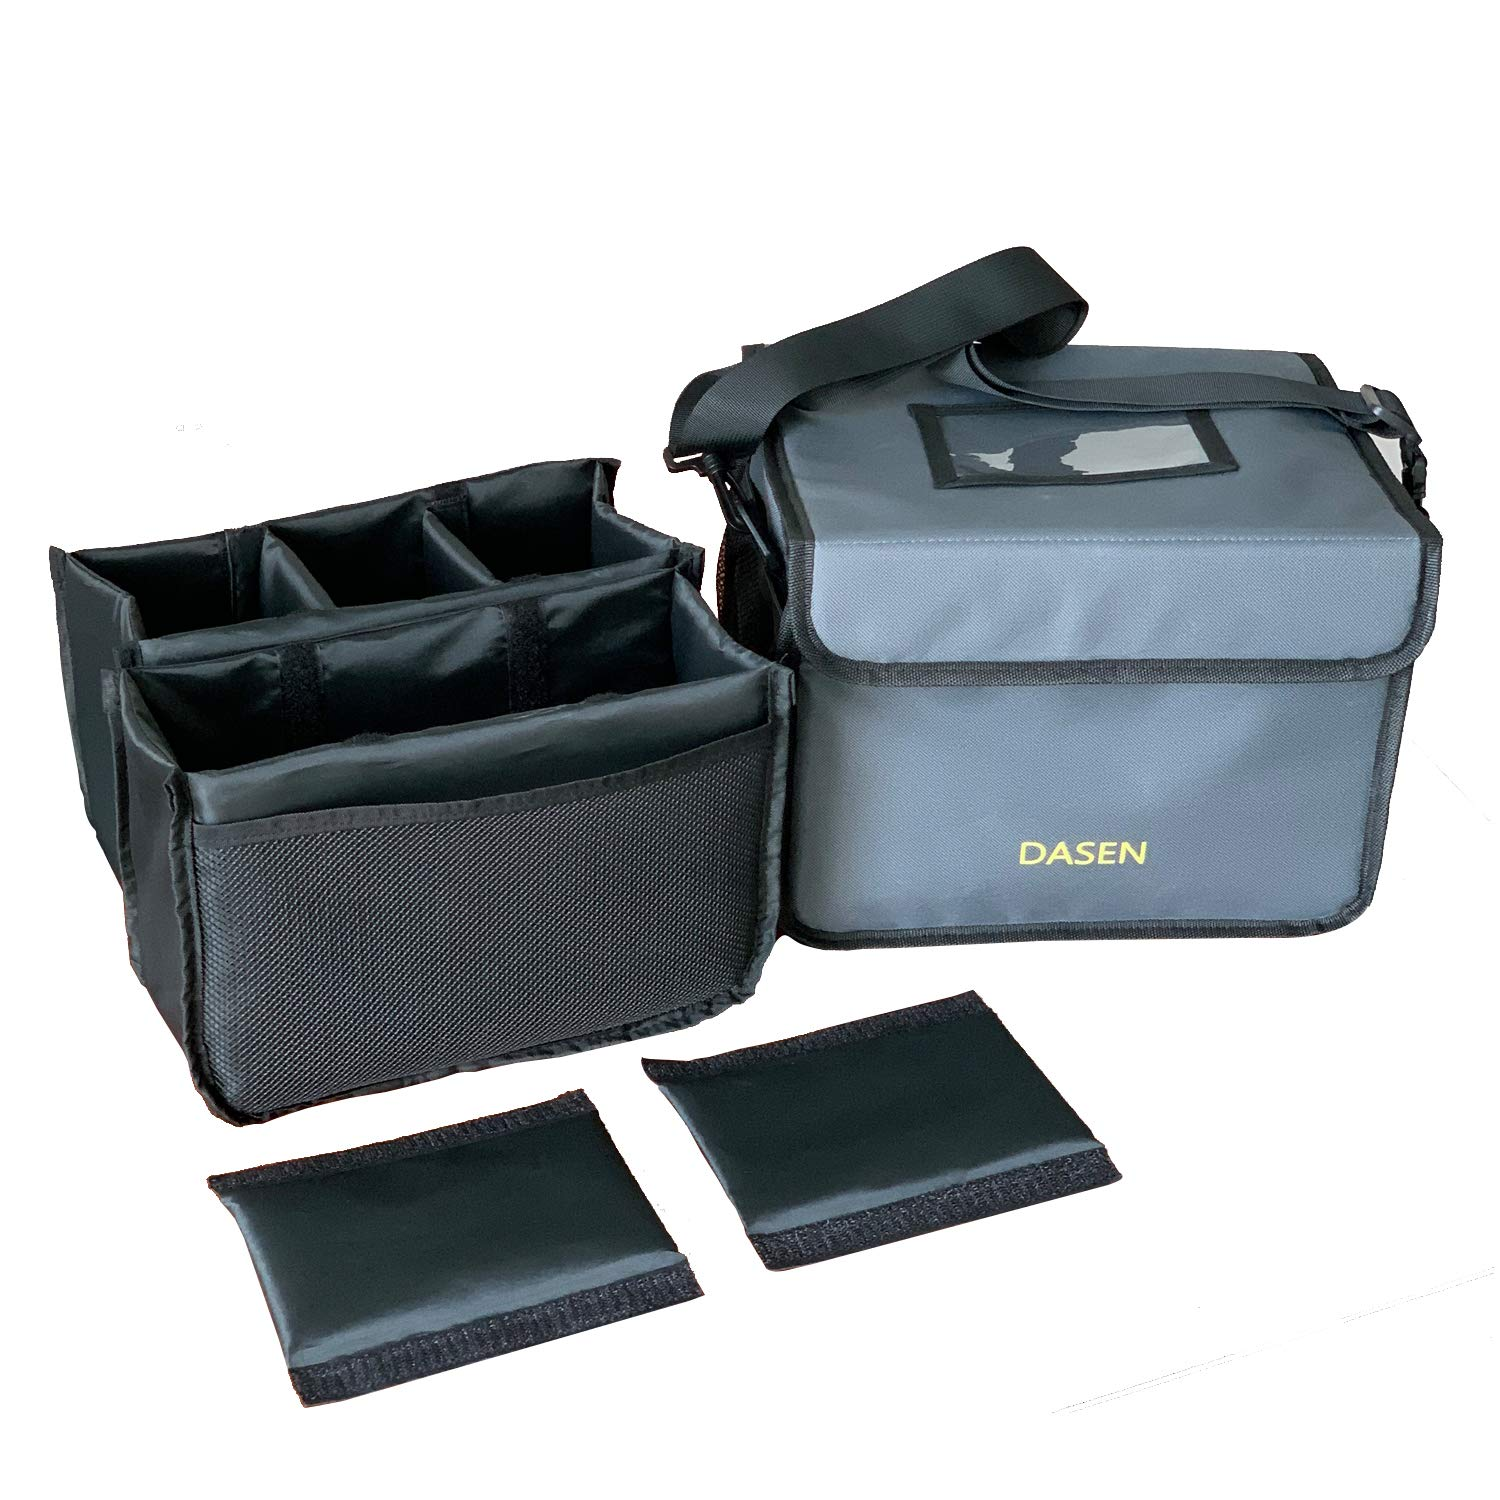 Insulated Drink Delivery Cup Carrier, Portable Cooler Bag, Food Delivery Take Out Containers, Reusable Coffee Cup Holder Hot Cold Beverages Insulated Bag Small Pizza Food Dish Transport with Dividers